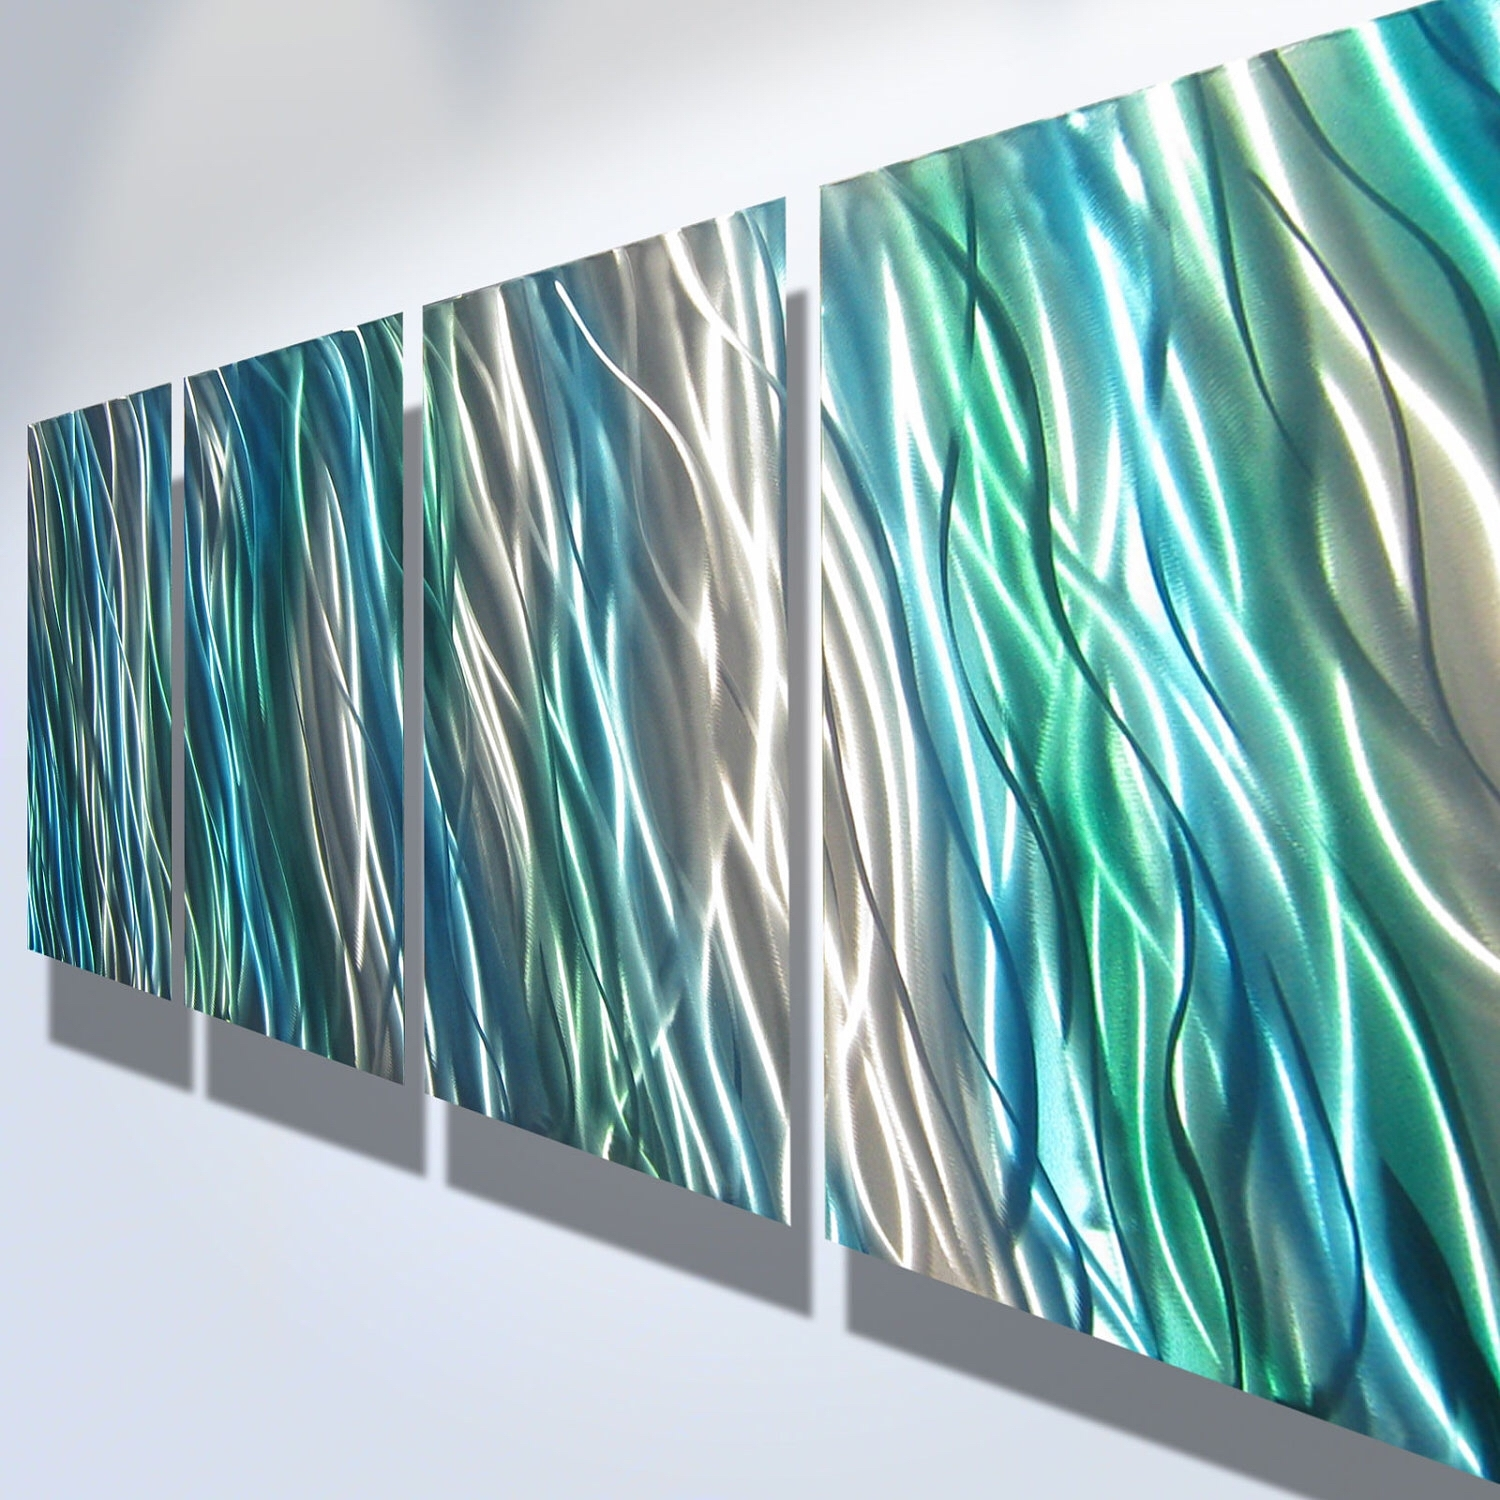 Metal Wall Art Decor Abstract Contemporary Modern Sculpture Pertaining To Most Recently Released Abstract Garden Wall Art (View 12 of 20)